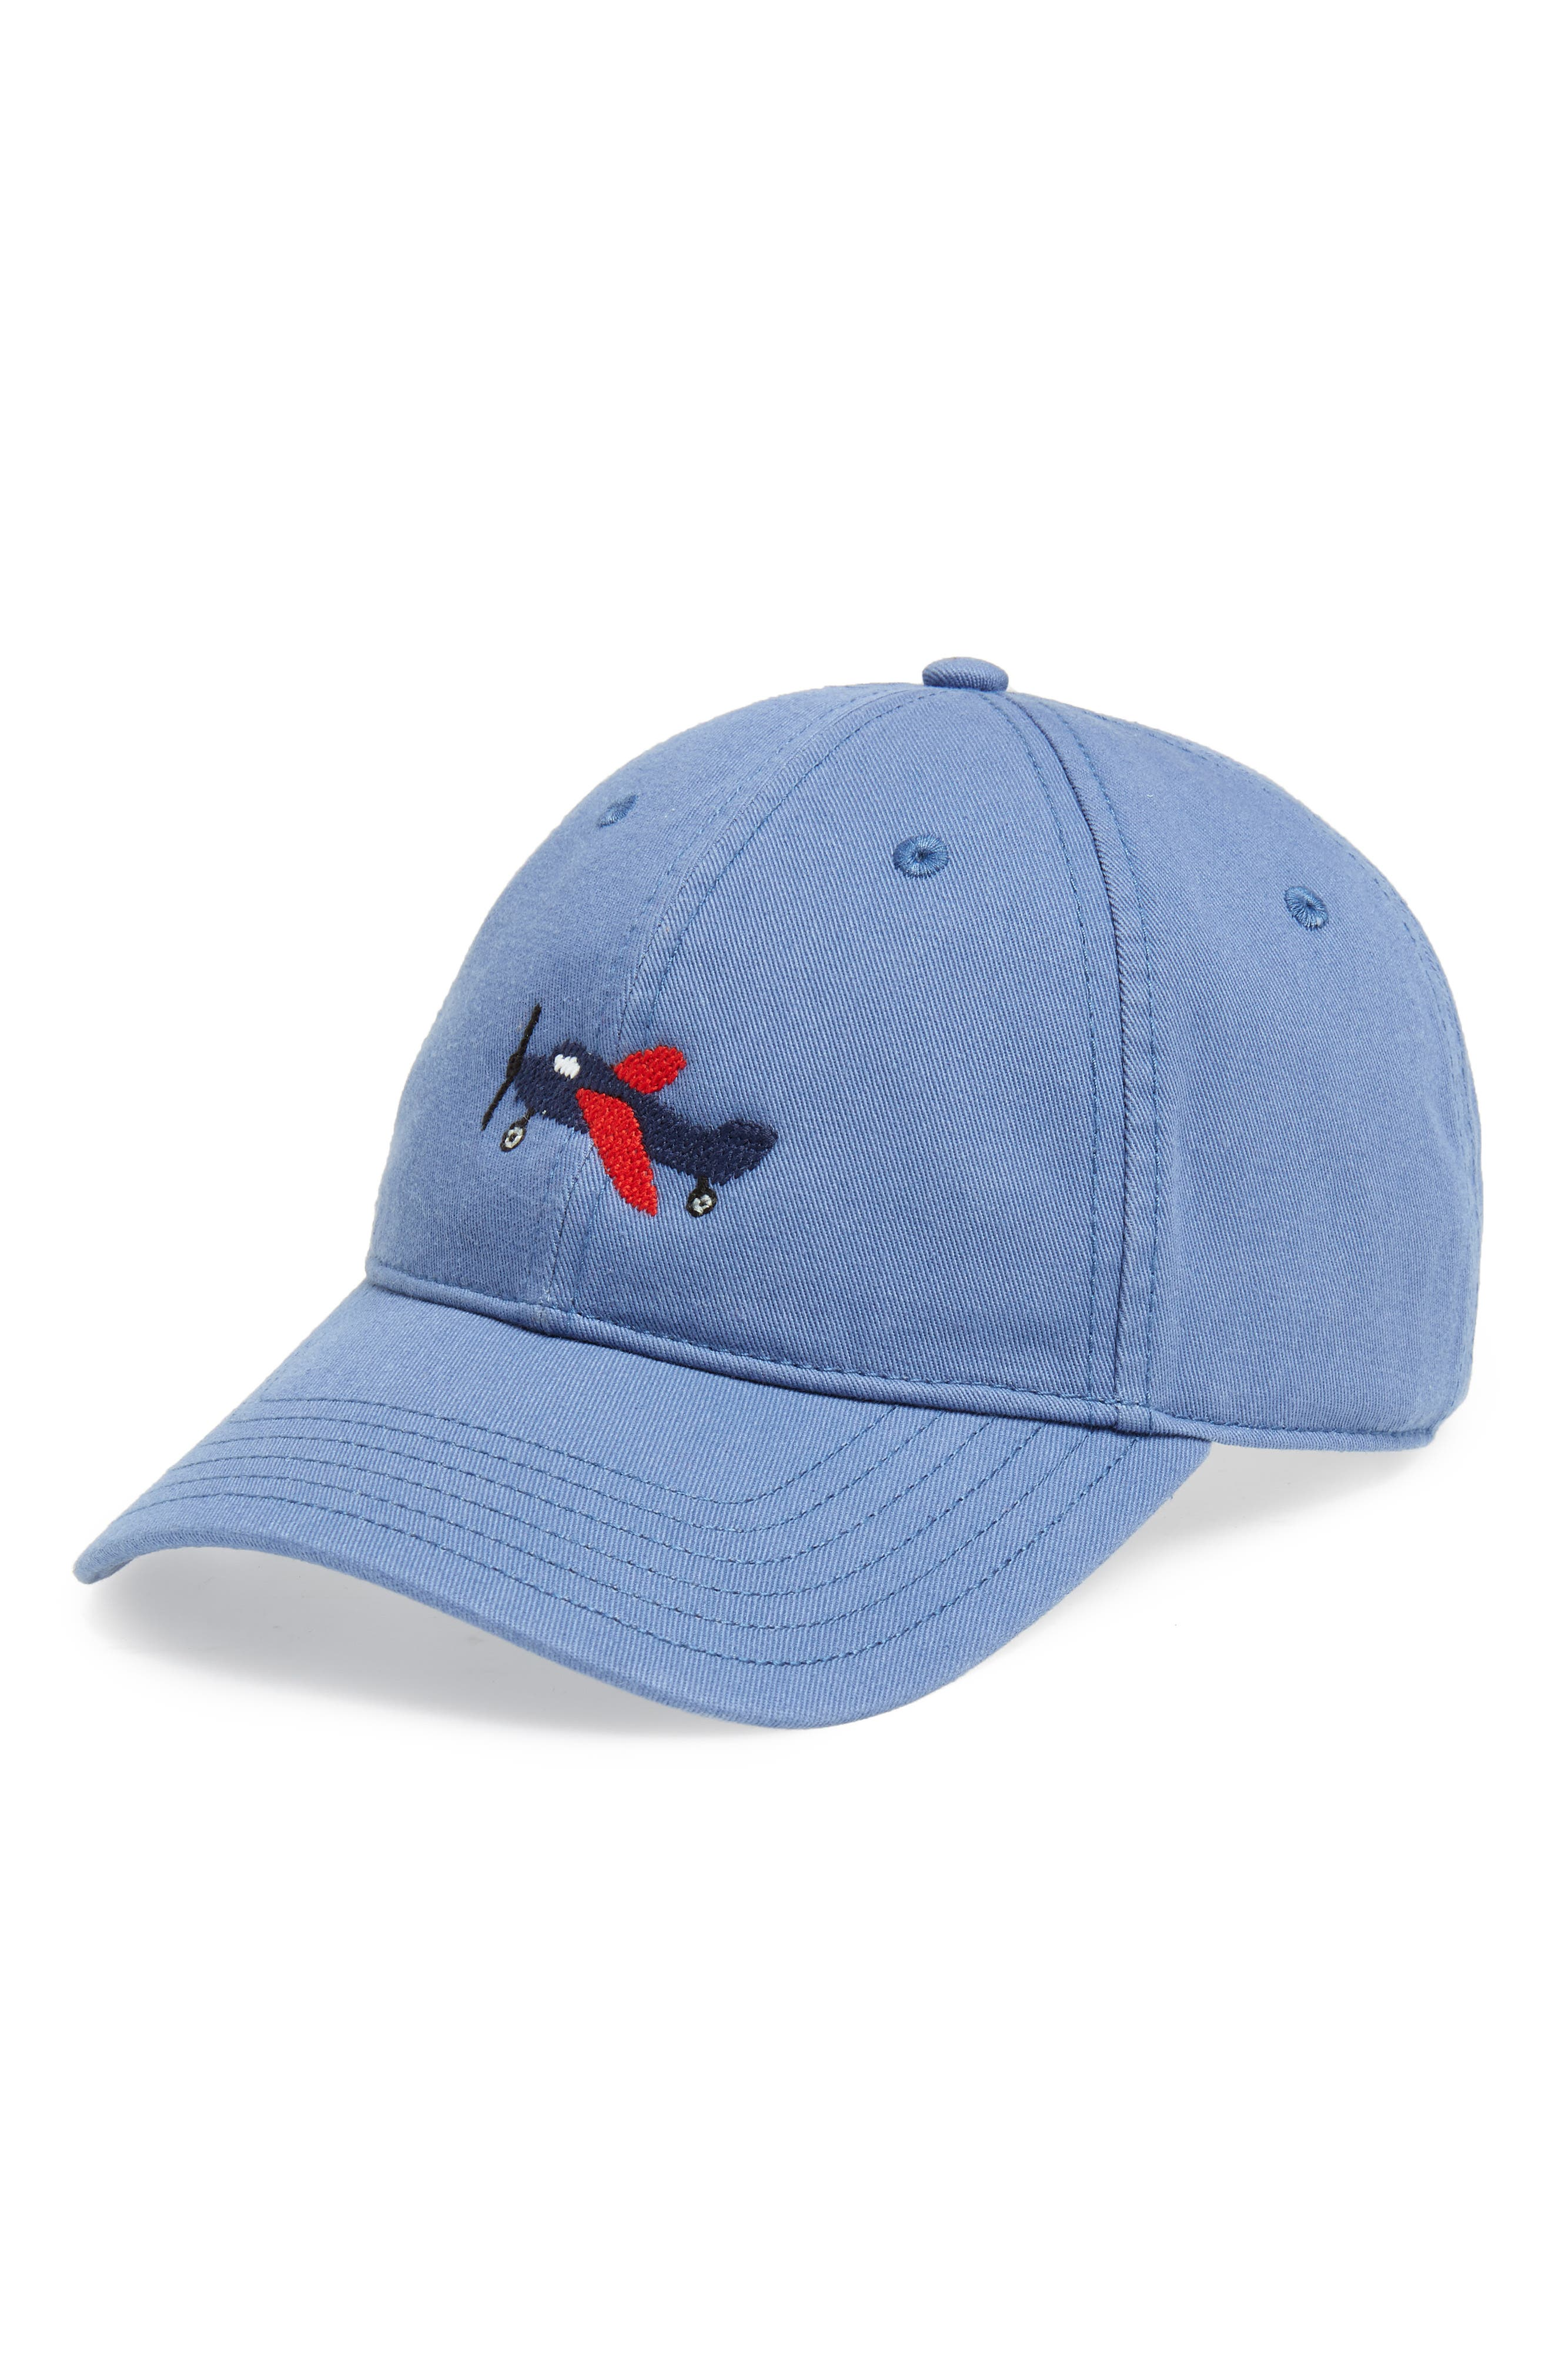 Airplane Baseball Cap,                         Main,                         color, BLUE